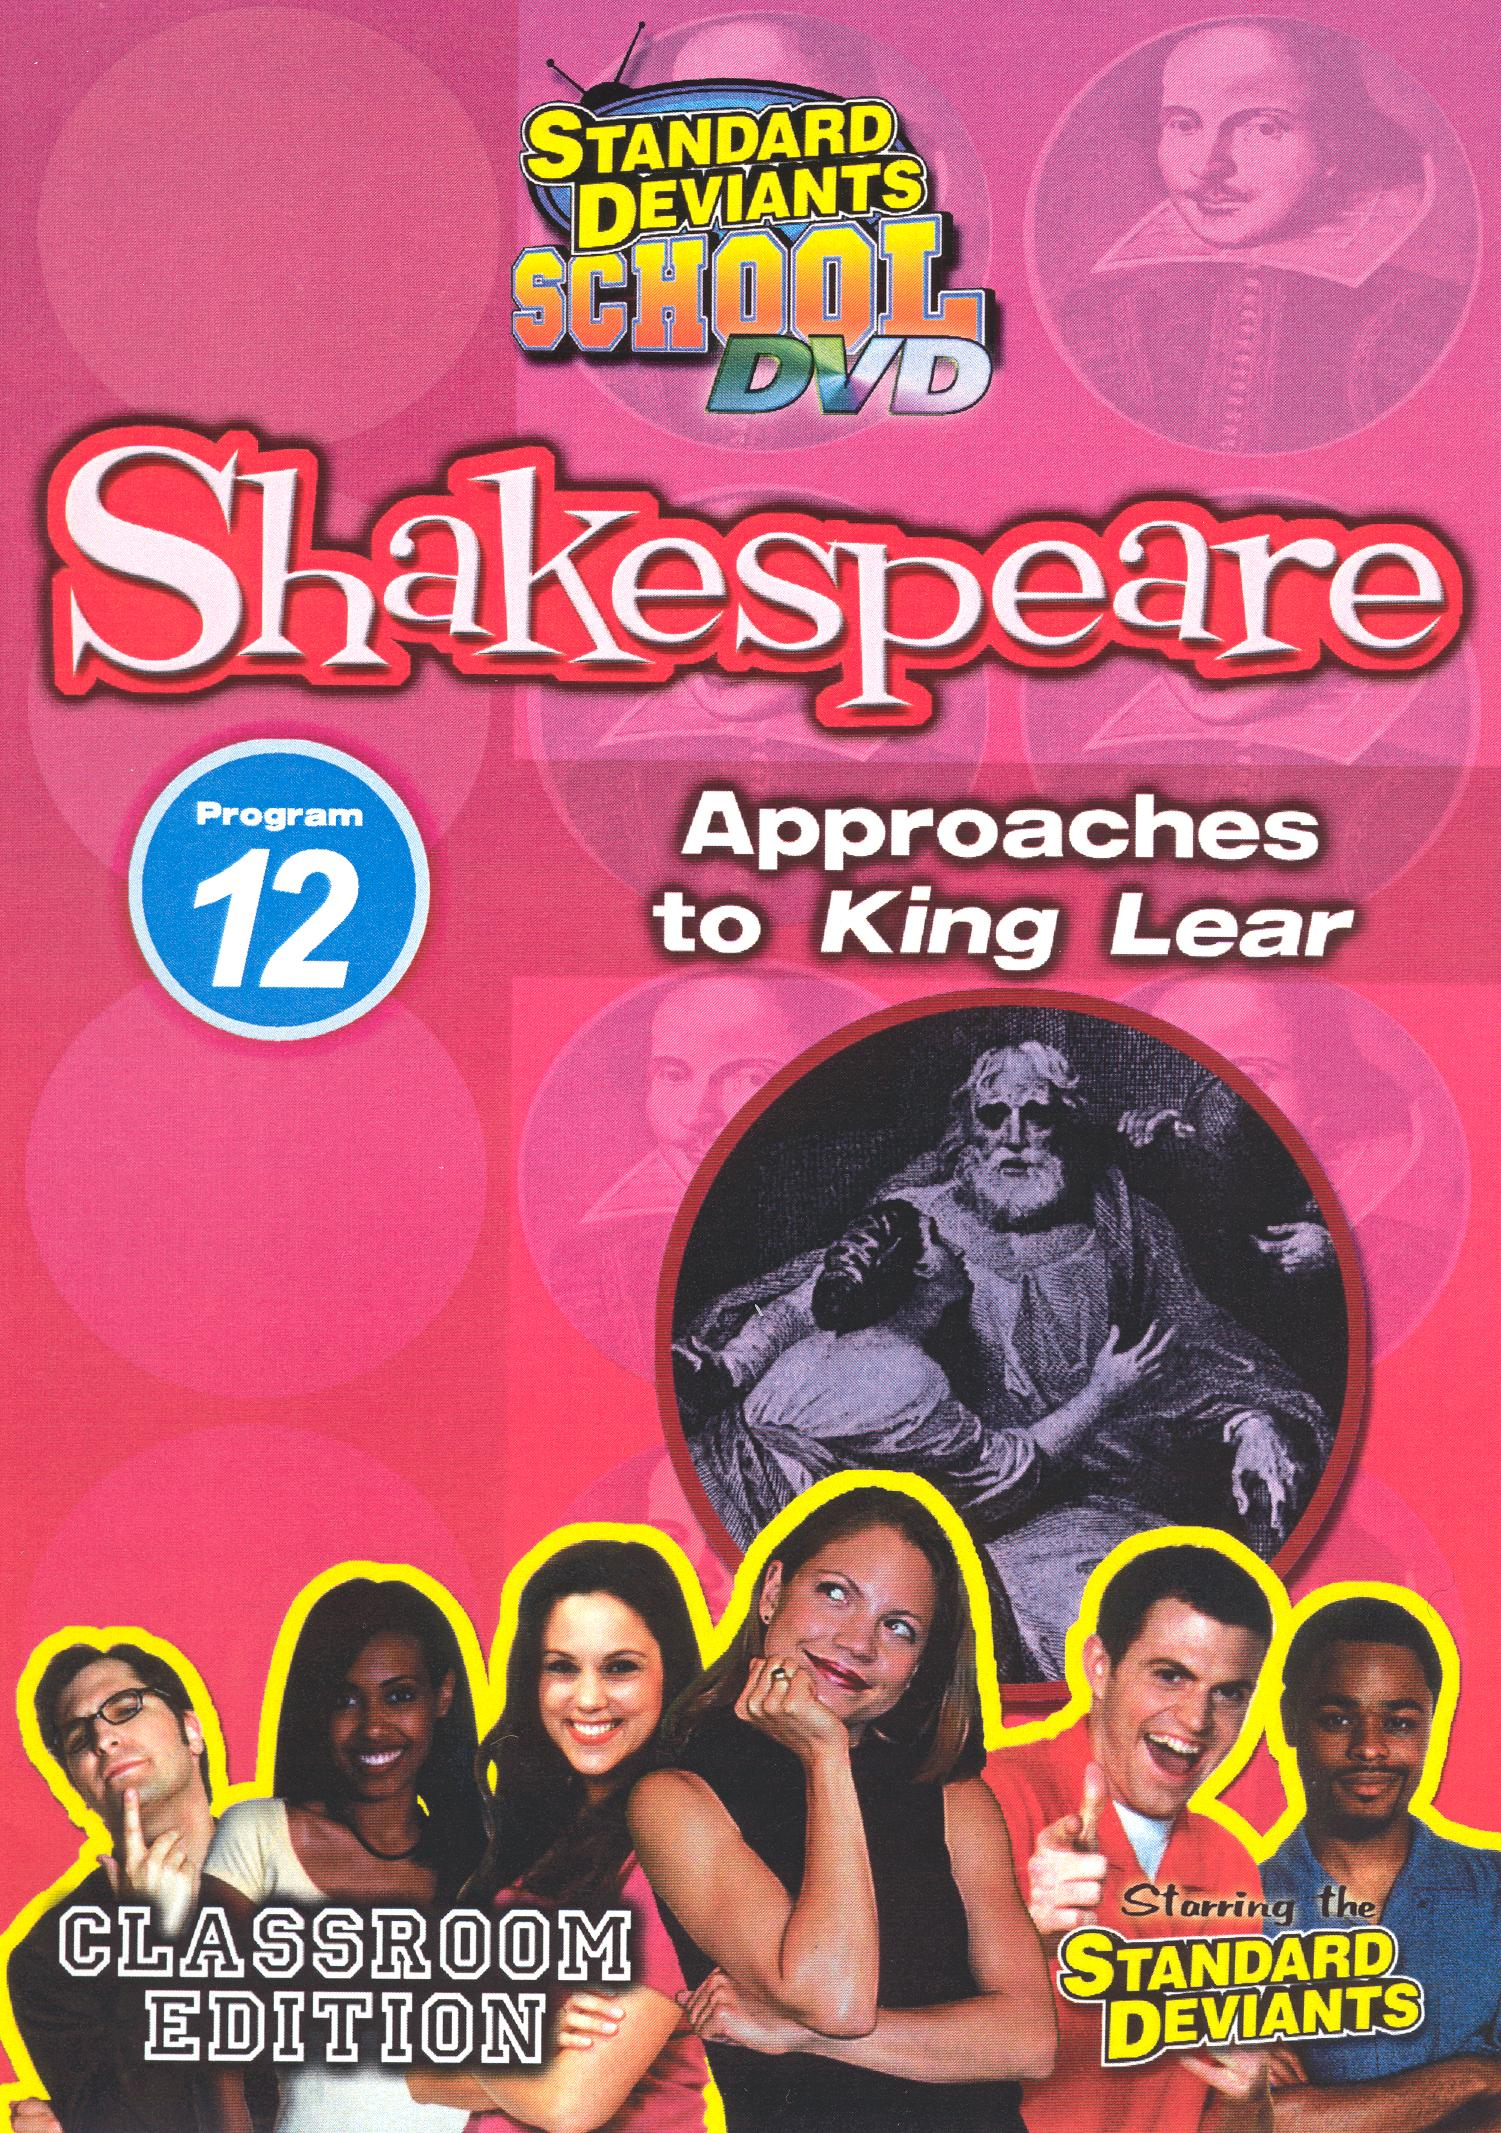 Standard Deviants School: Shakespeare, Program 12 - Approaches to King Lear